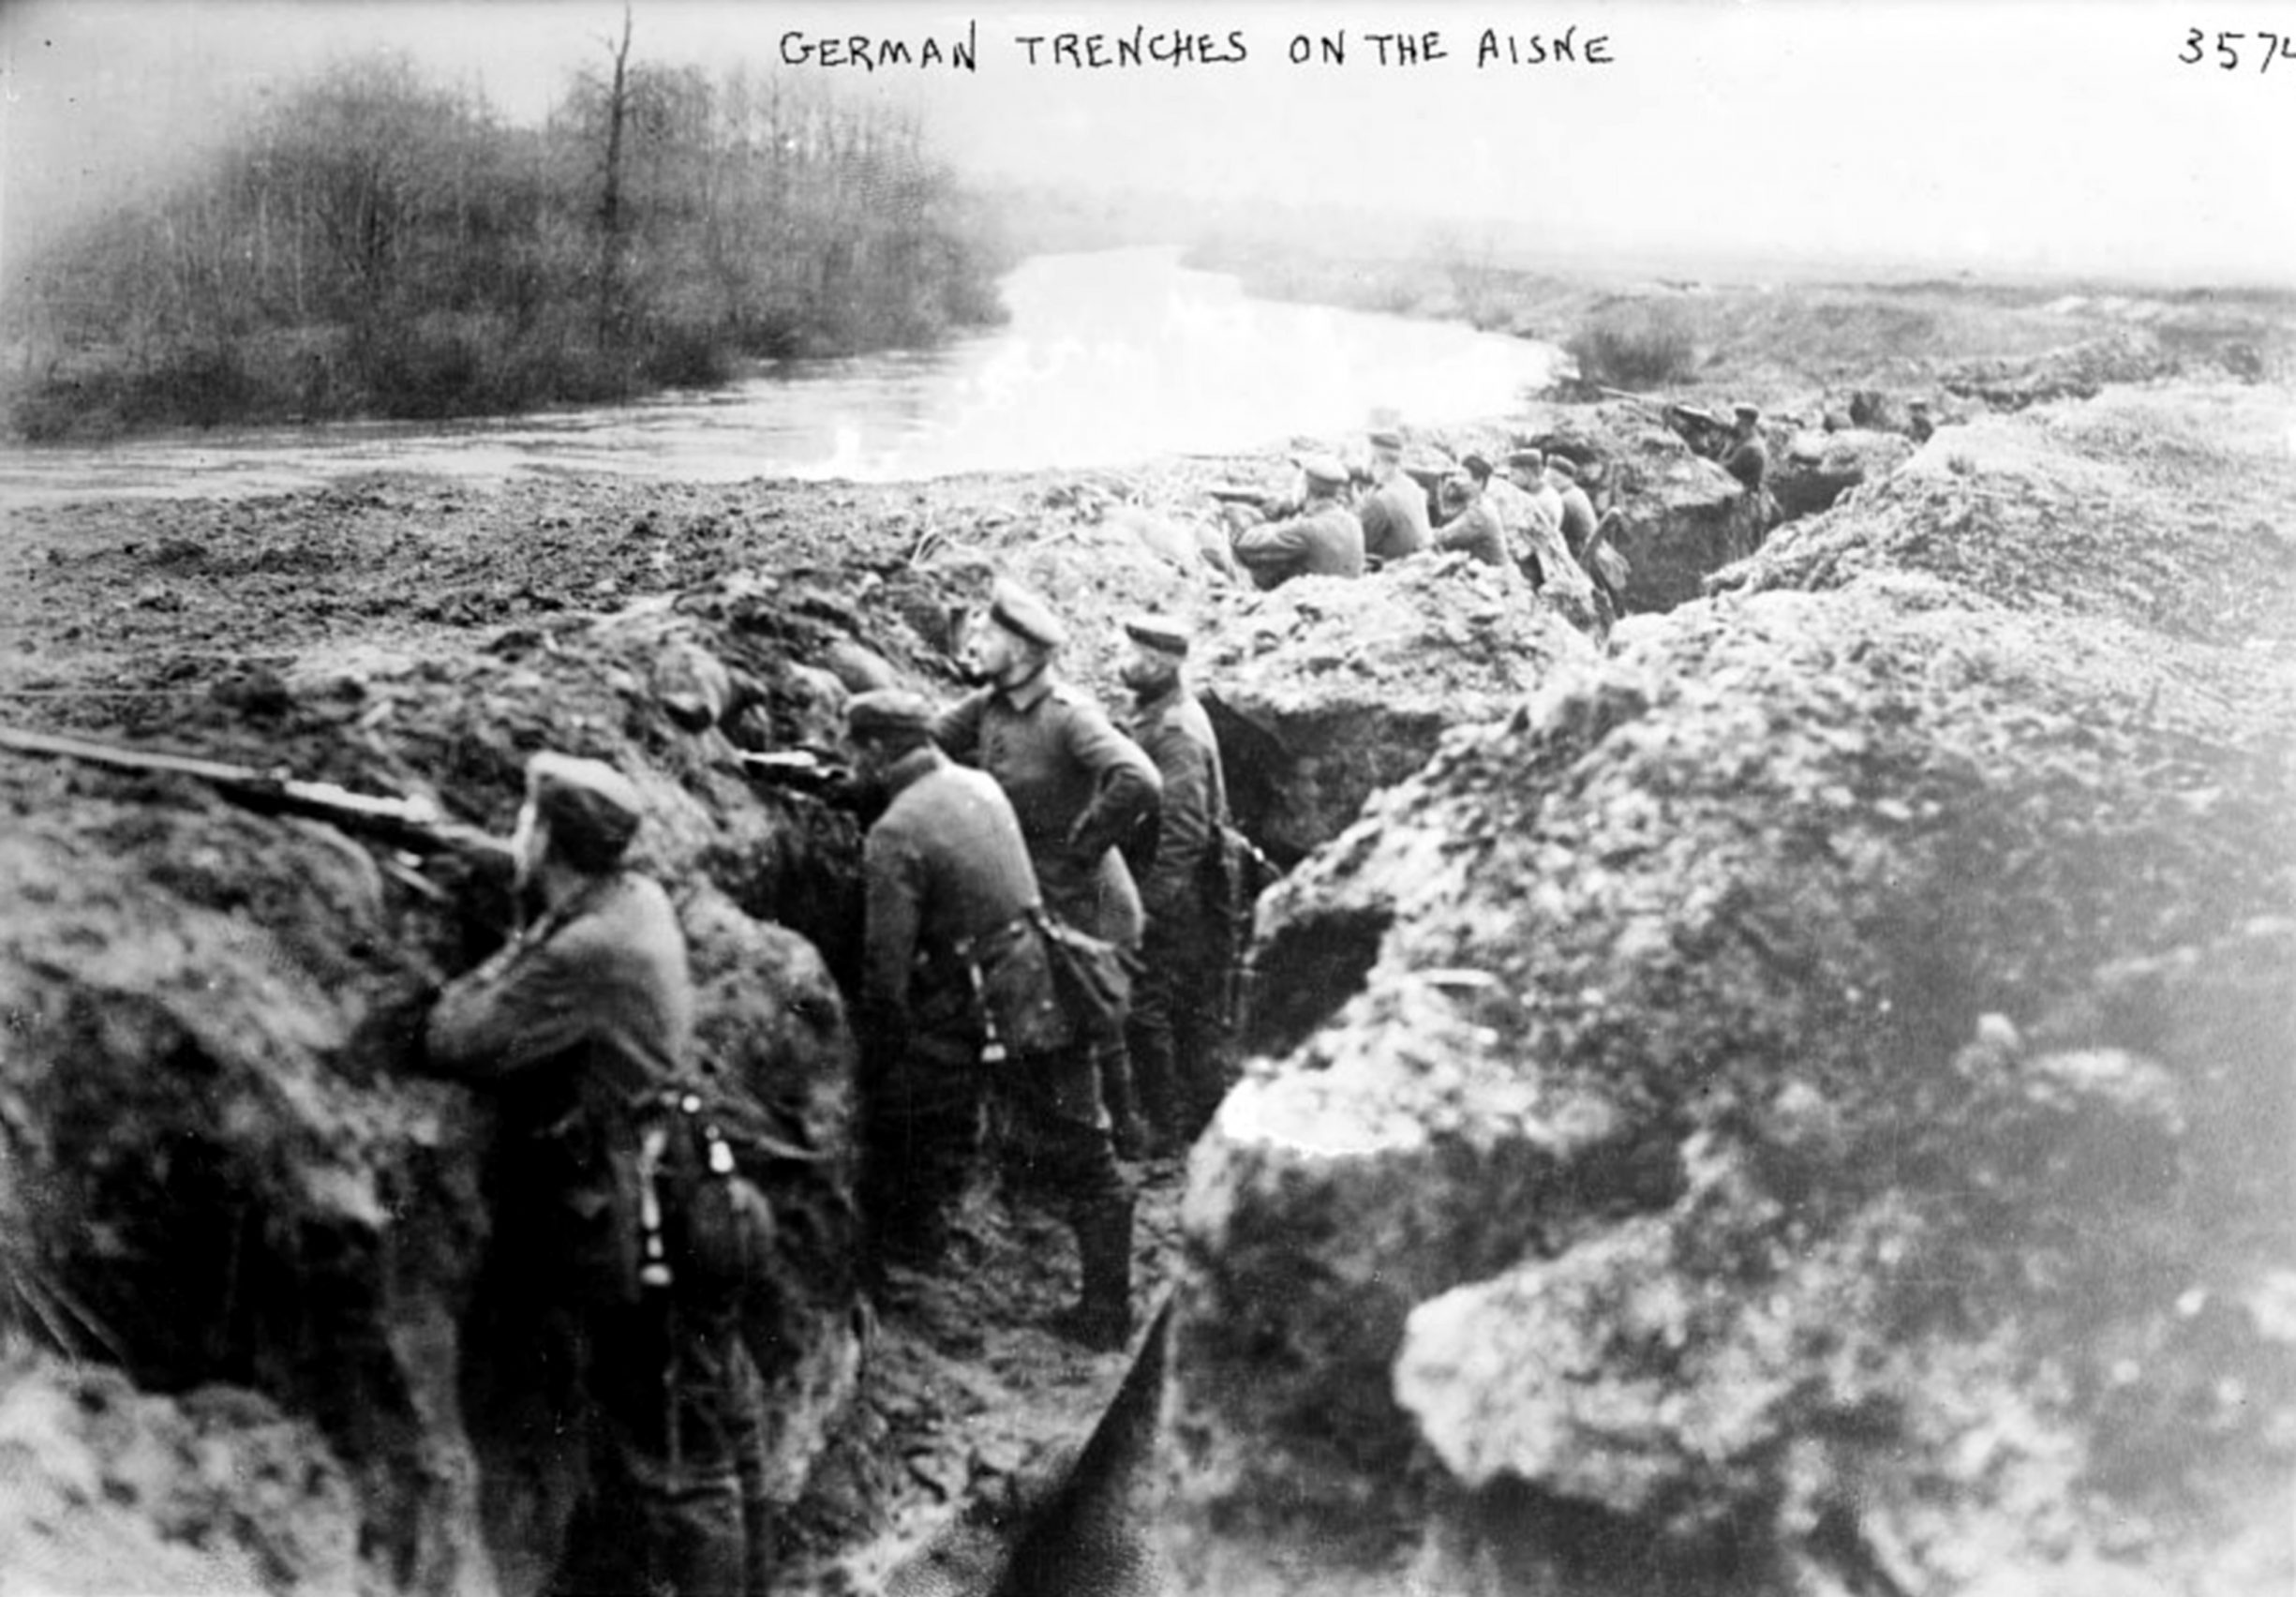 German Trenches on the Aisne during the First World War. The photograph is undated. The men are not wearing helmets so this is early in the war, possibly 1914 or 1915. Source: Library of Congress. Author: Bain News Service (publisher) Permission (Reusing this file)